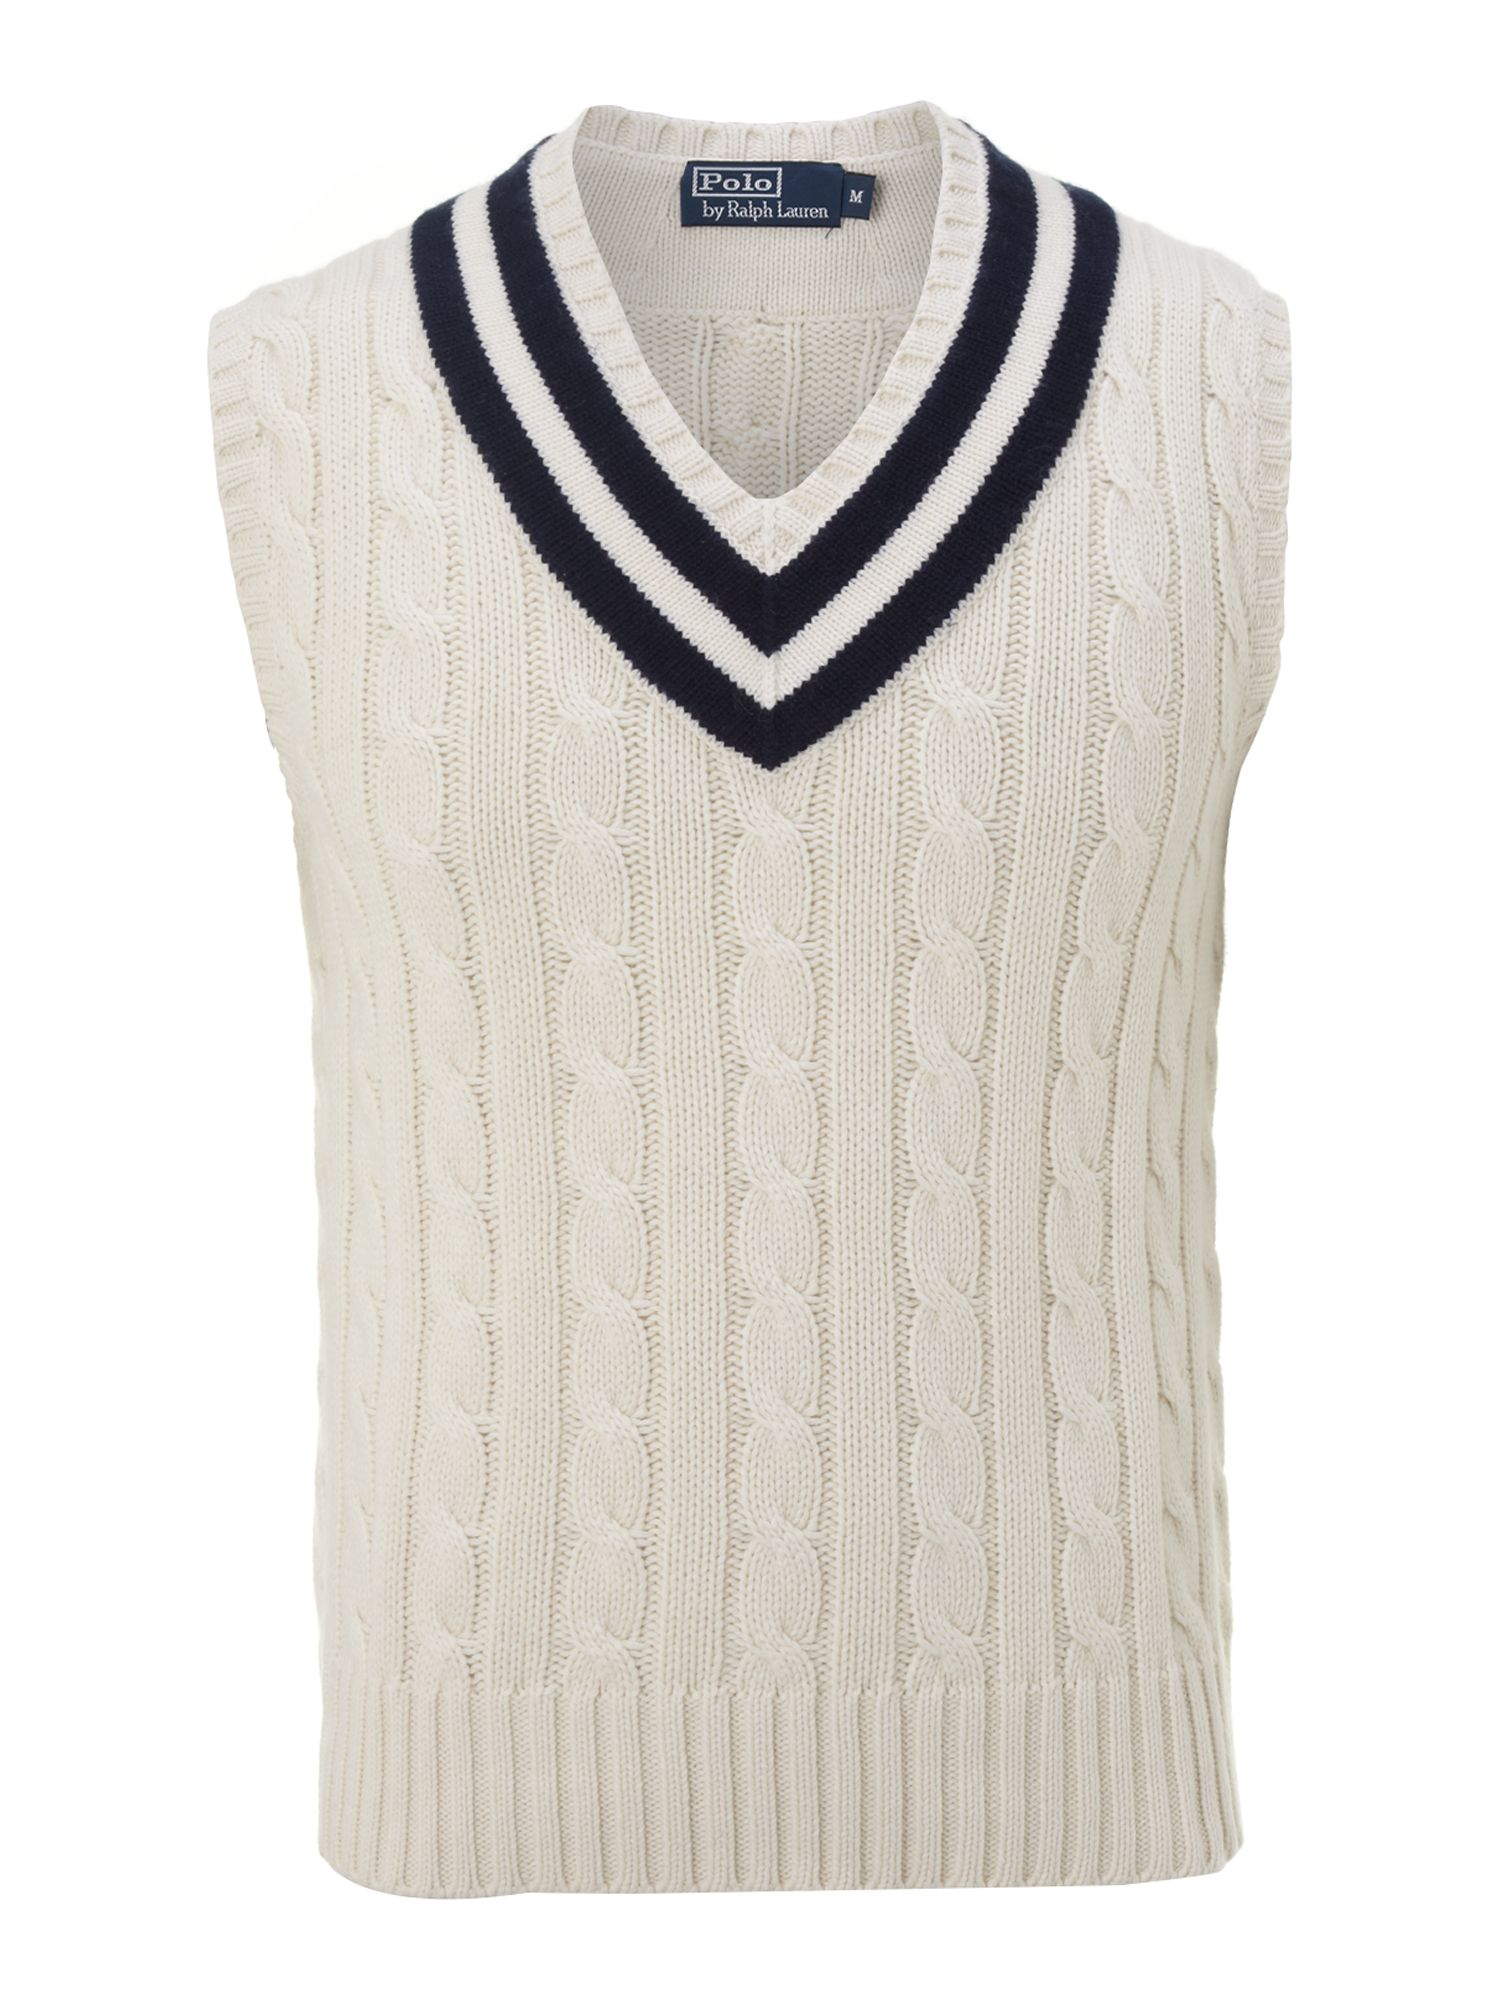 Knit Mens Sweater Vest